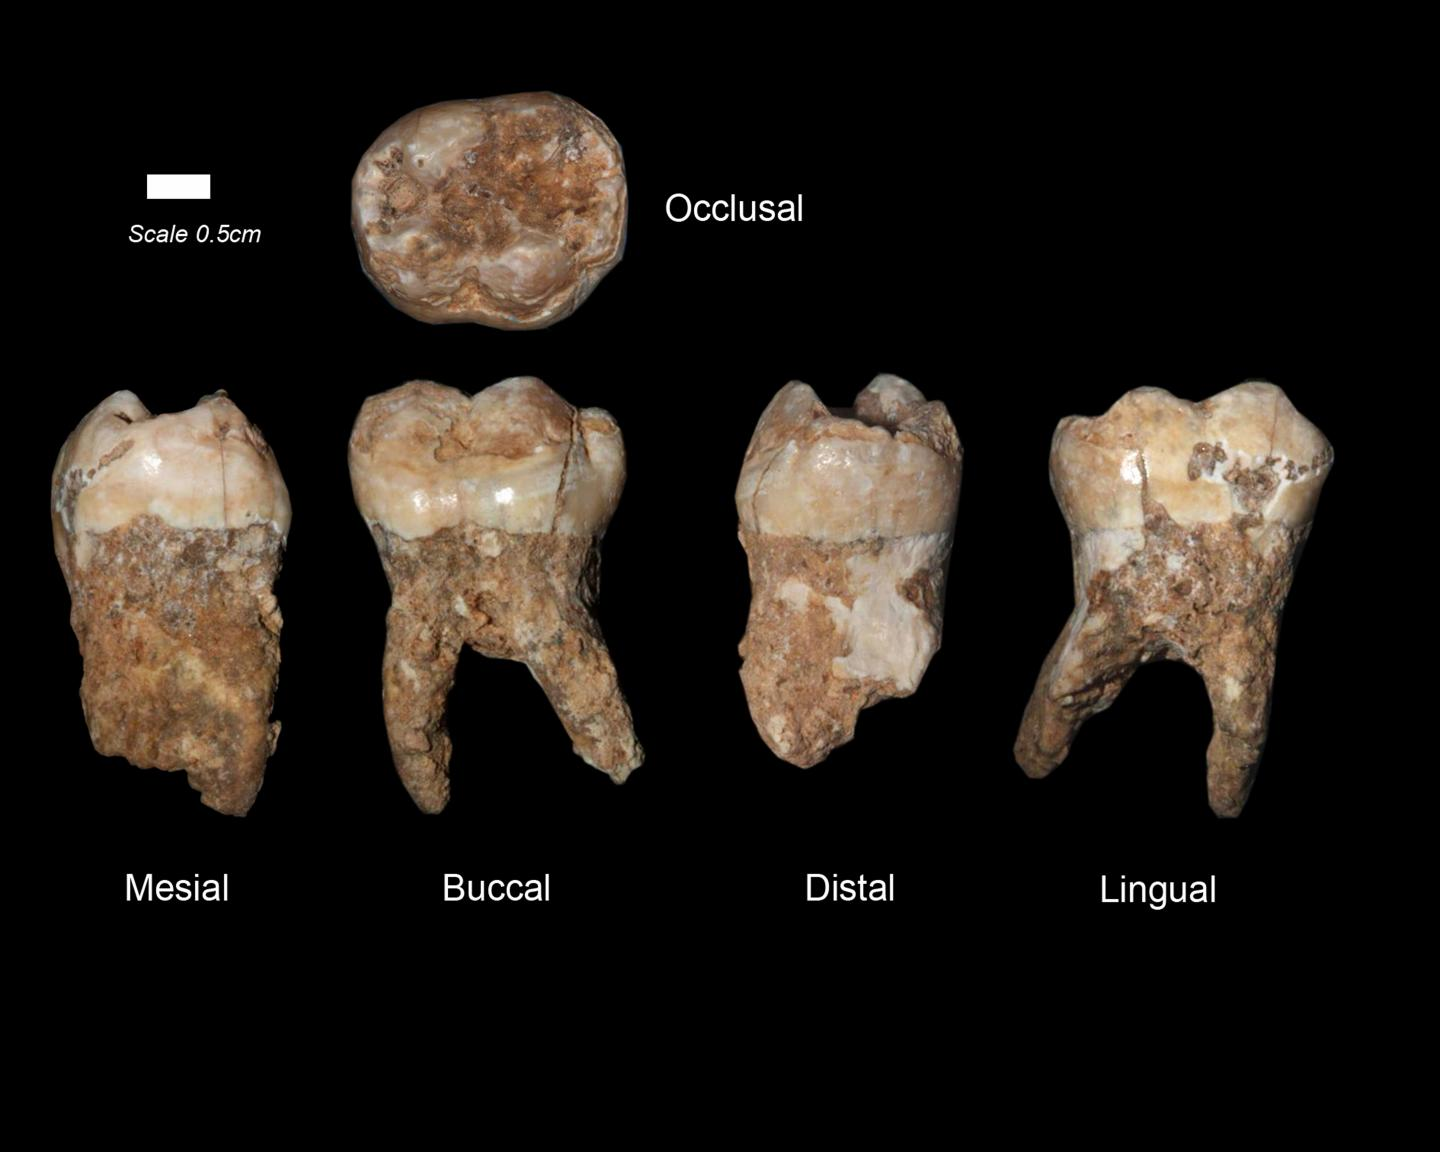 400000 Year Old Dental Tartar Provides Earliest Evidence Of Manmade